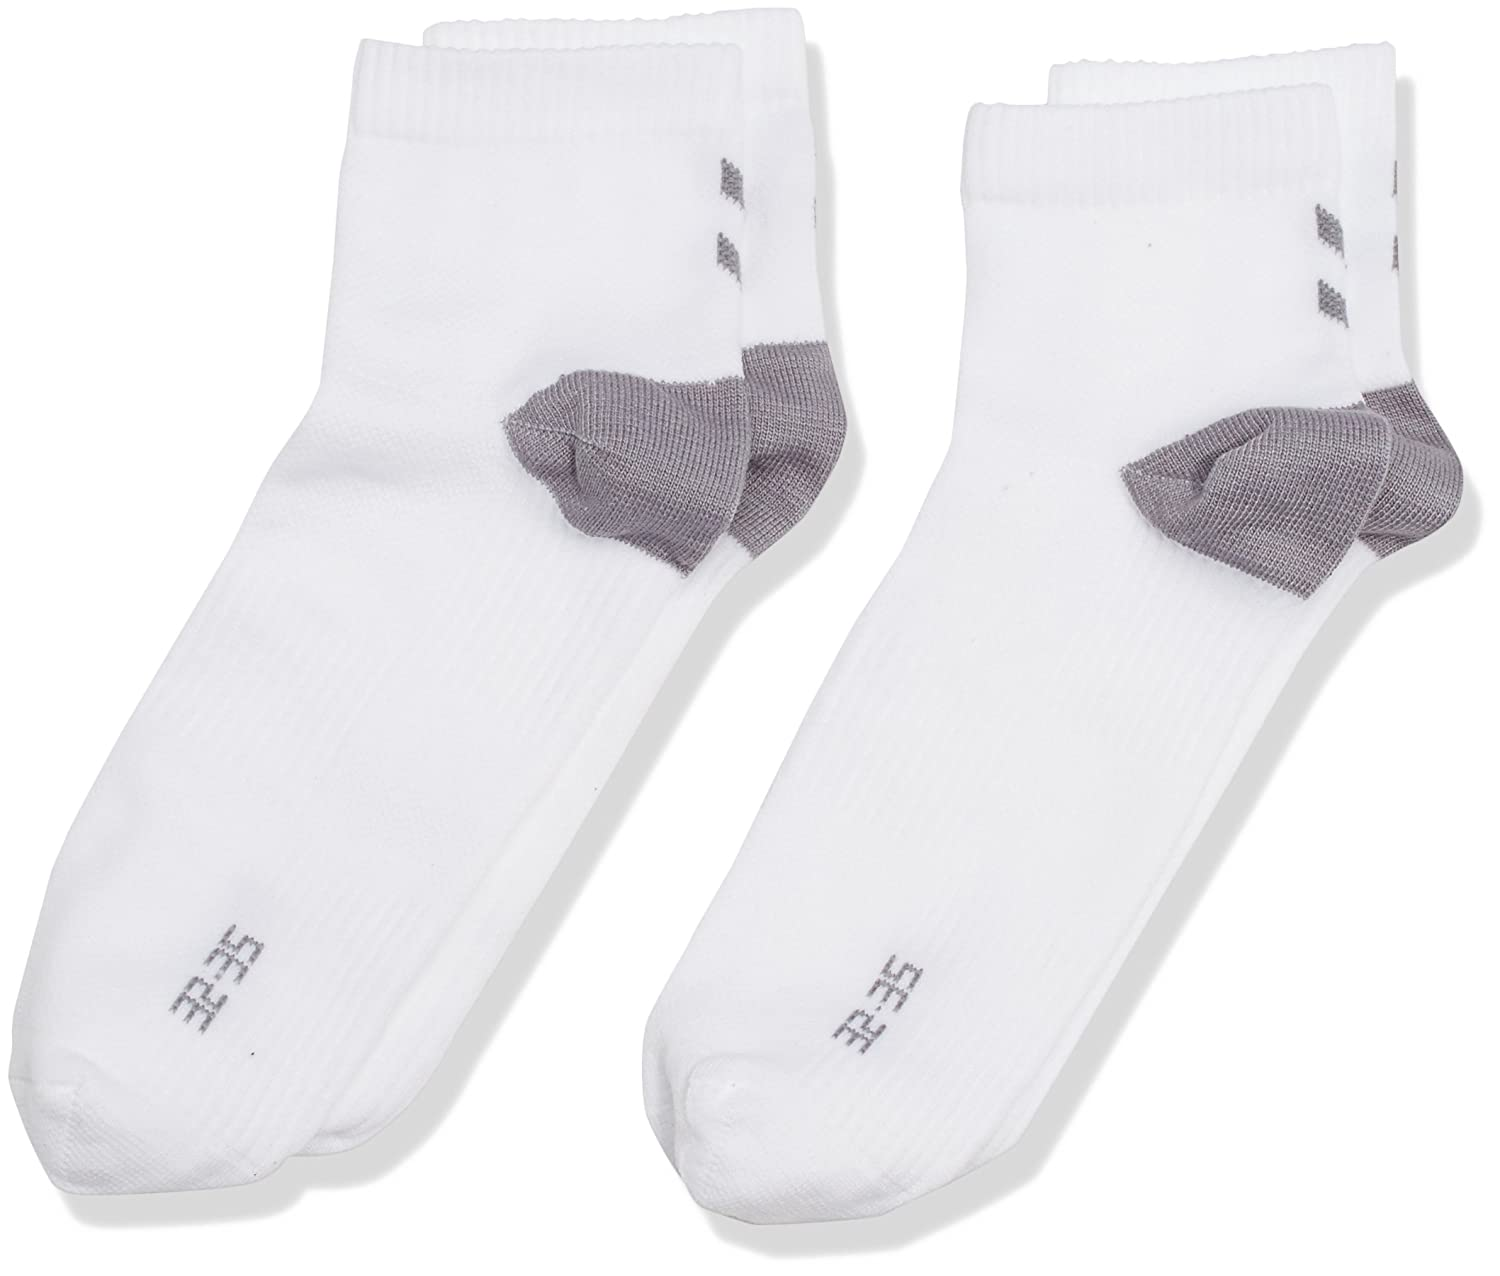 Hummel Niños Calcetines Performance de 2 Pack, Todo el año, Infantil, Color Blanco - White/Lighter Monument, tamaño 8 (32-35): Amazon.es: Deportes y aire ...